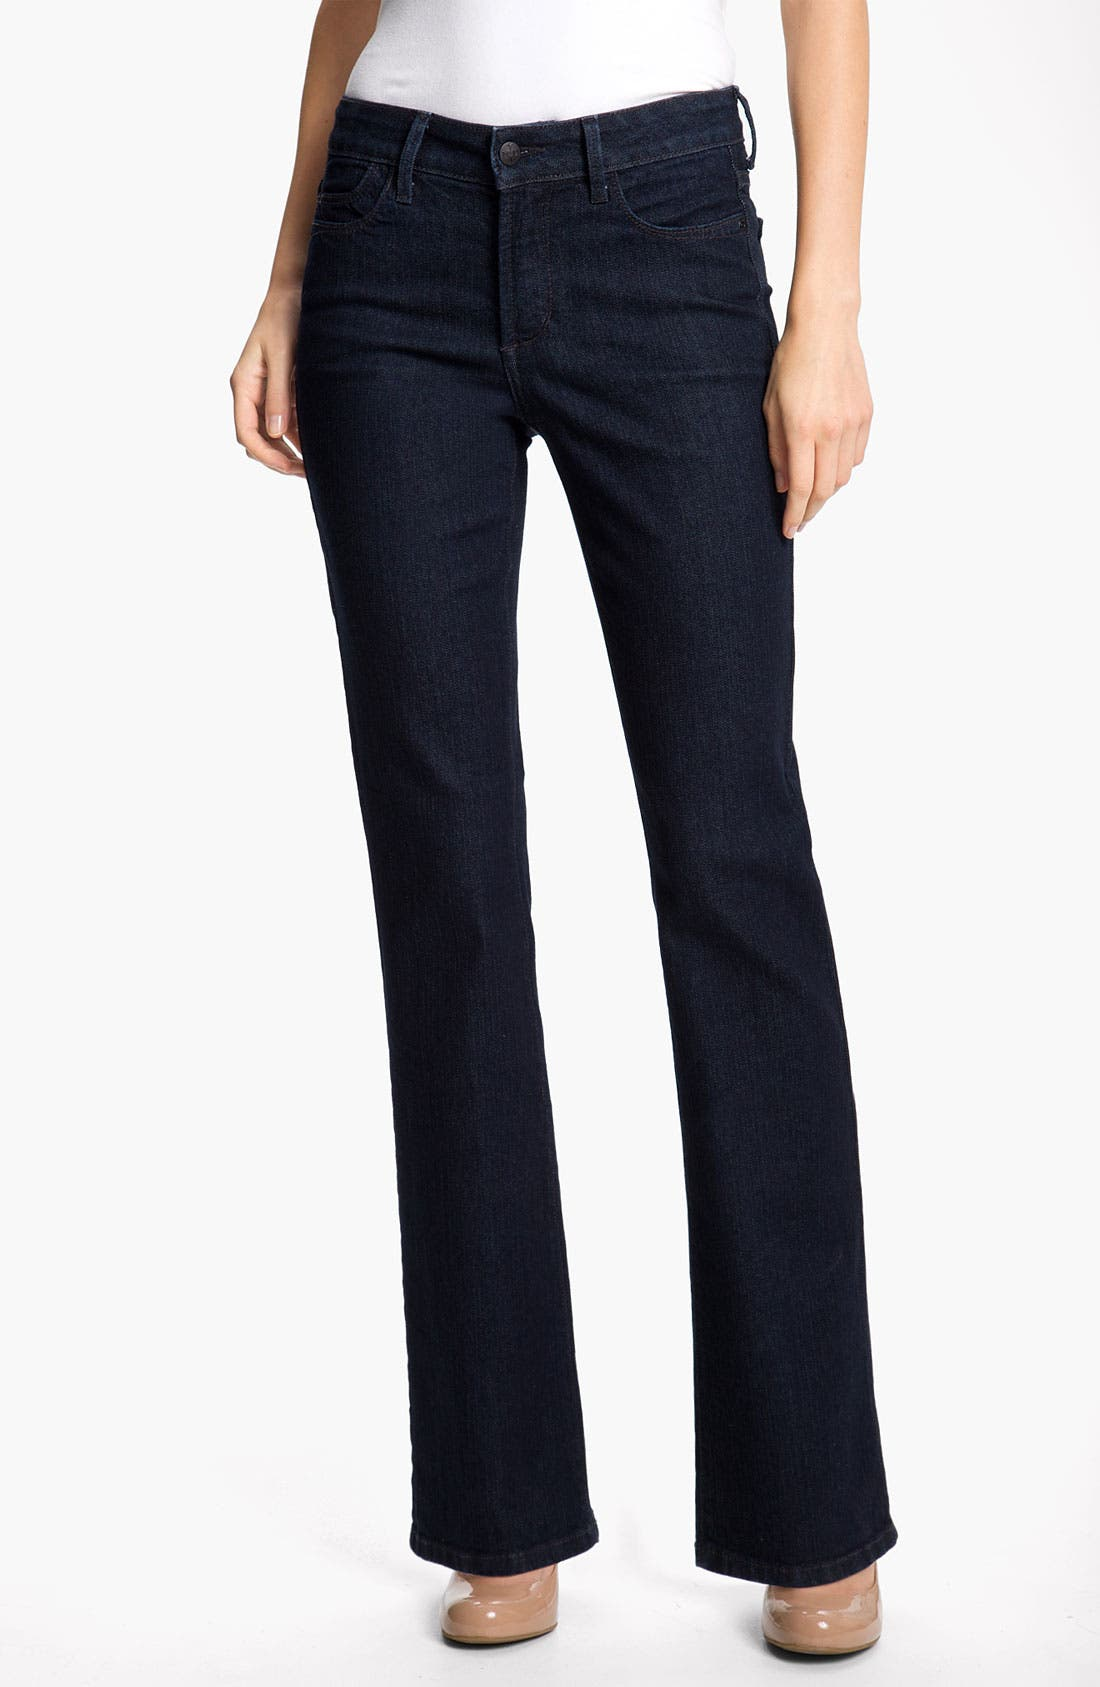 Main Image - NYDJ 'Barbara' Stretch Bootcut Jeans (Dark Enzyme) (Petite)